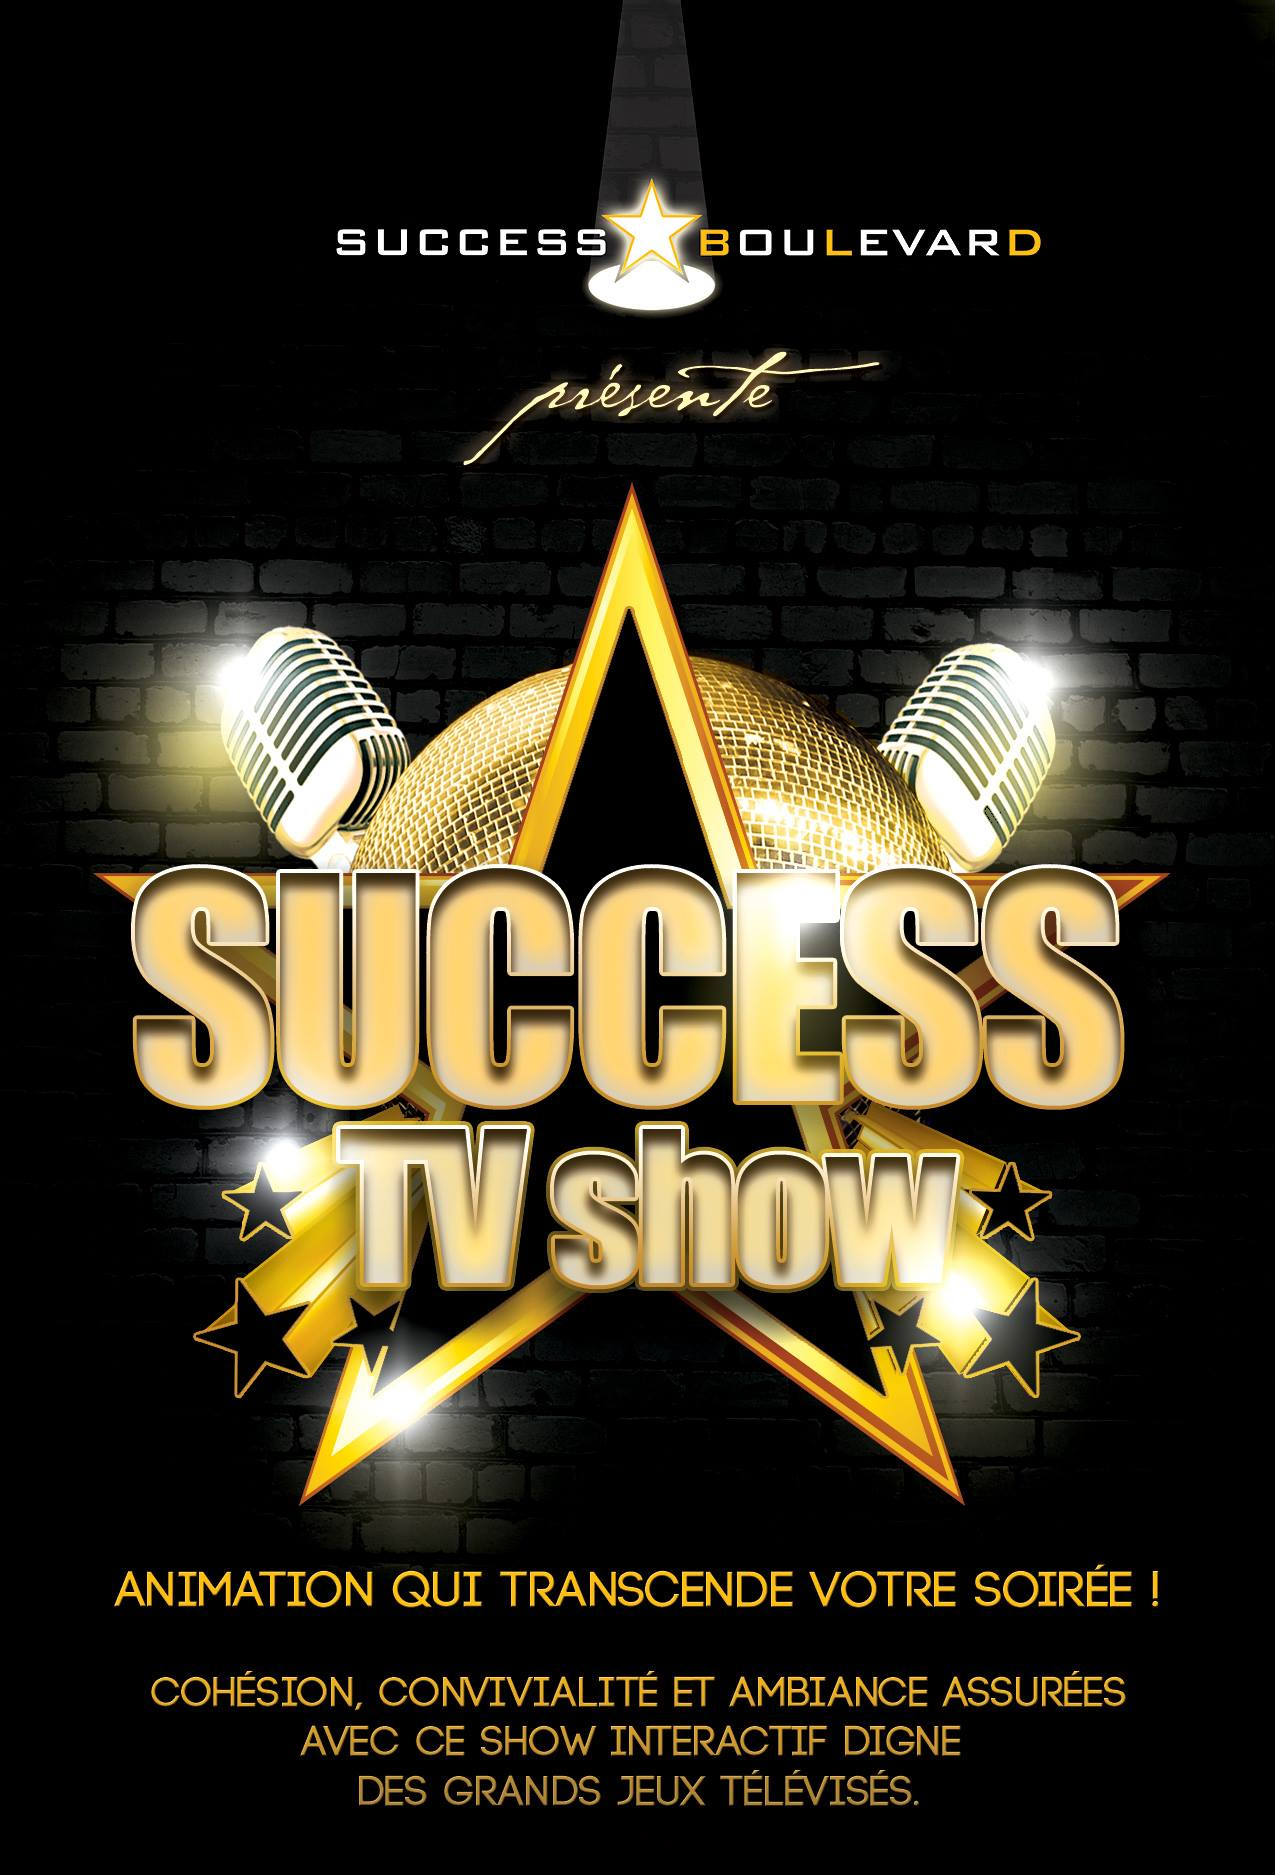 animation Success Boulevard Success TV Show